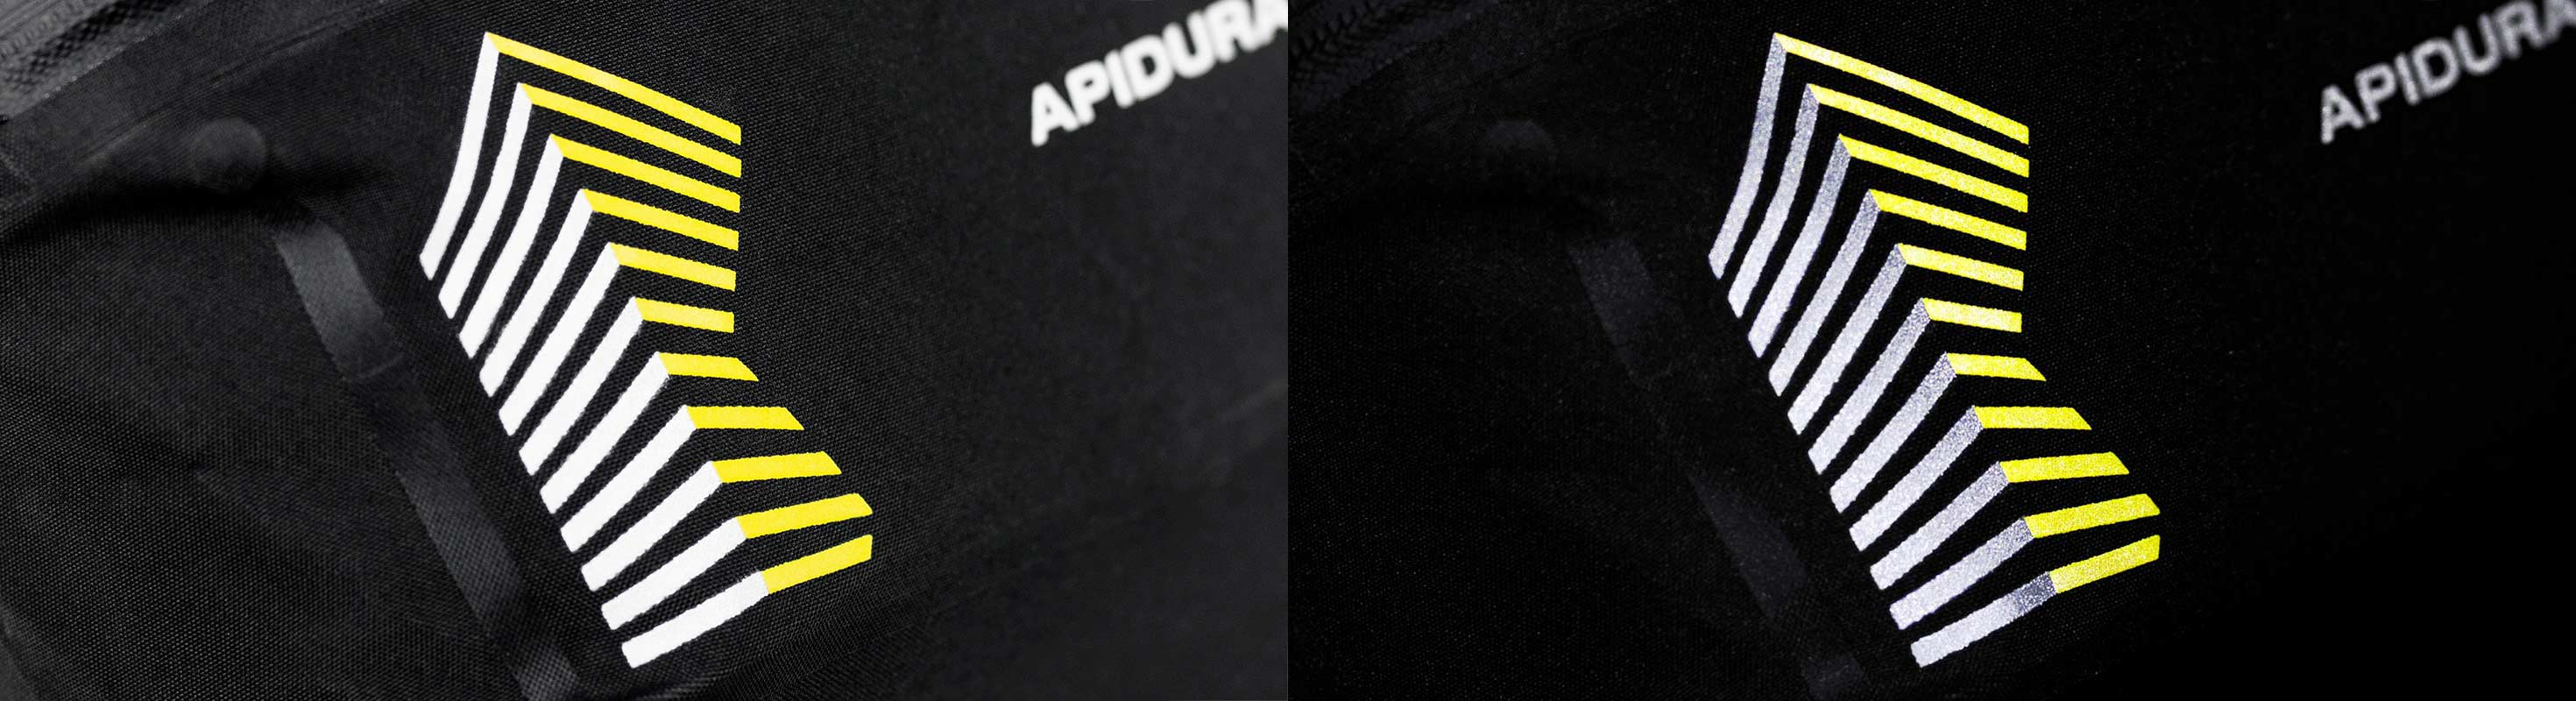 Apidura Race series